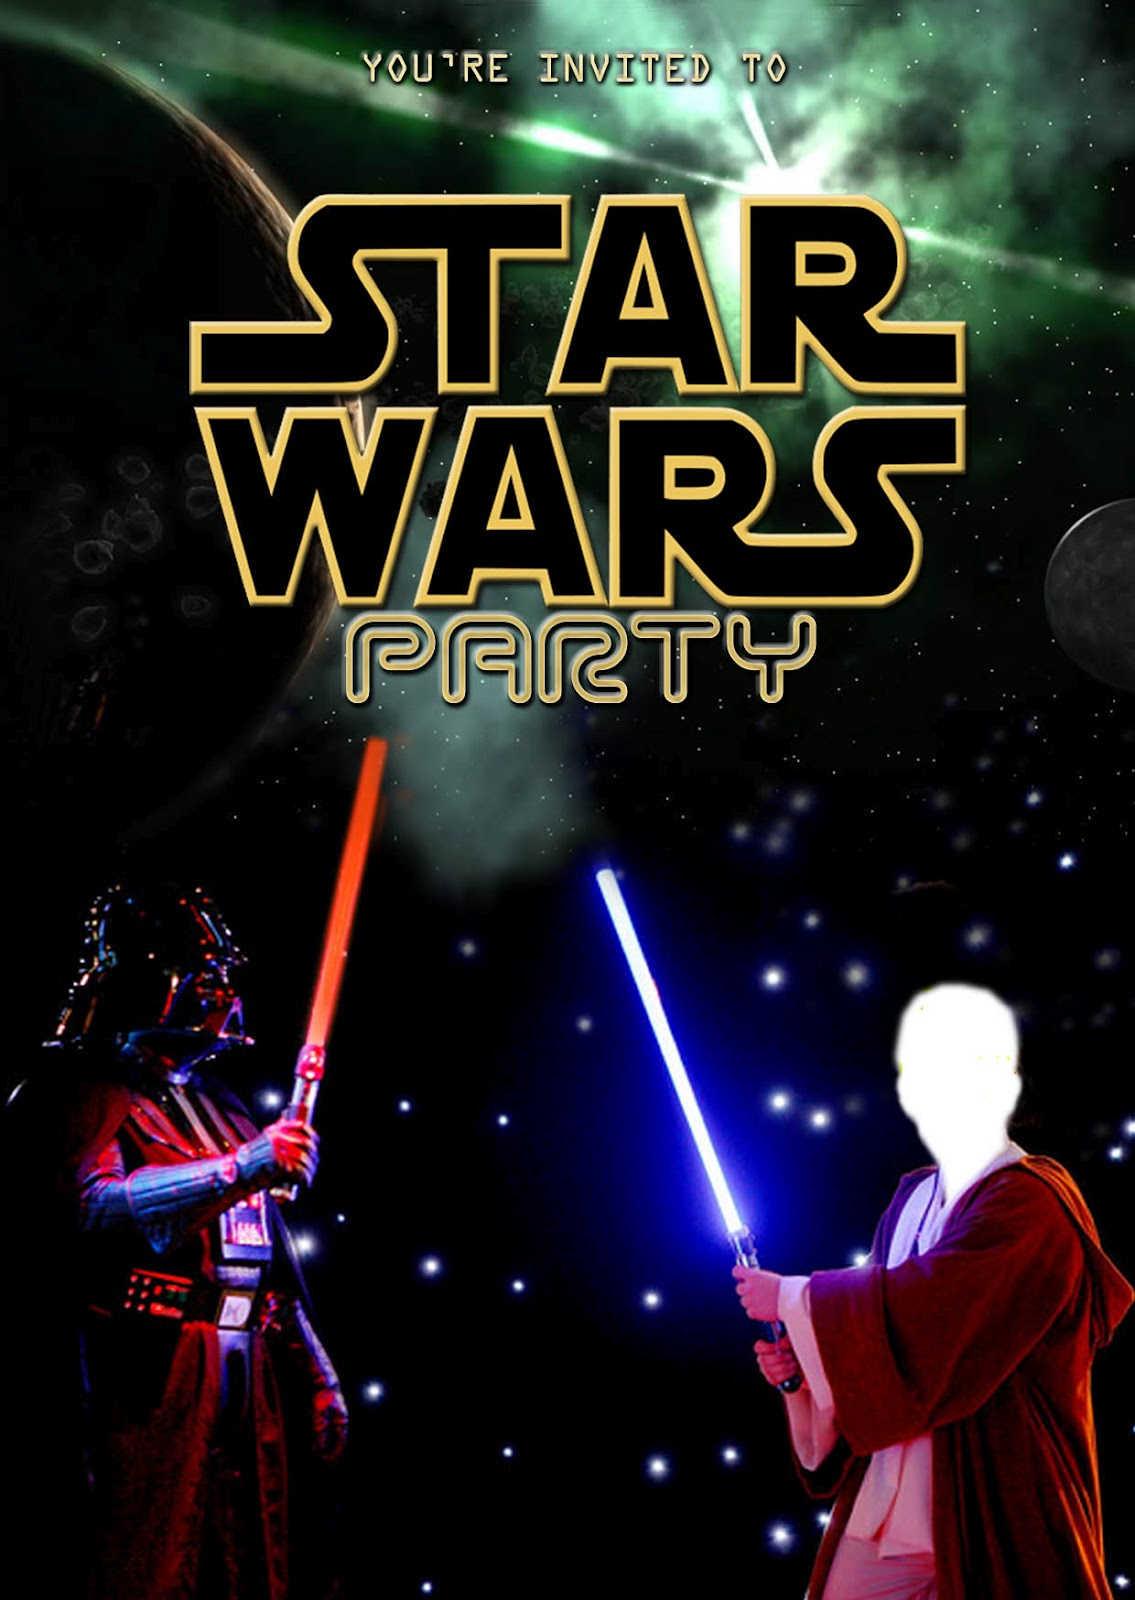 graphic about Star Wars Invitations Free Printable titled Totally free Youngsters Occasion Invites: Star Wars Social gathering Invitation